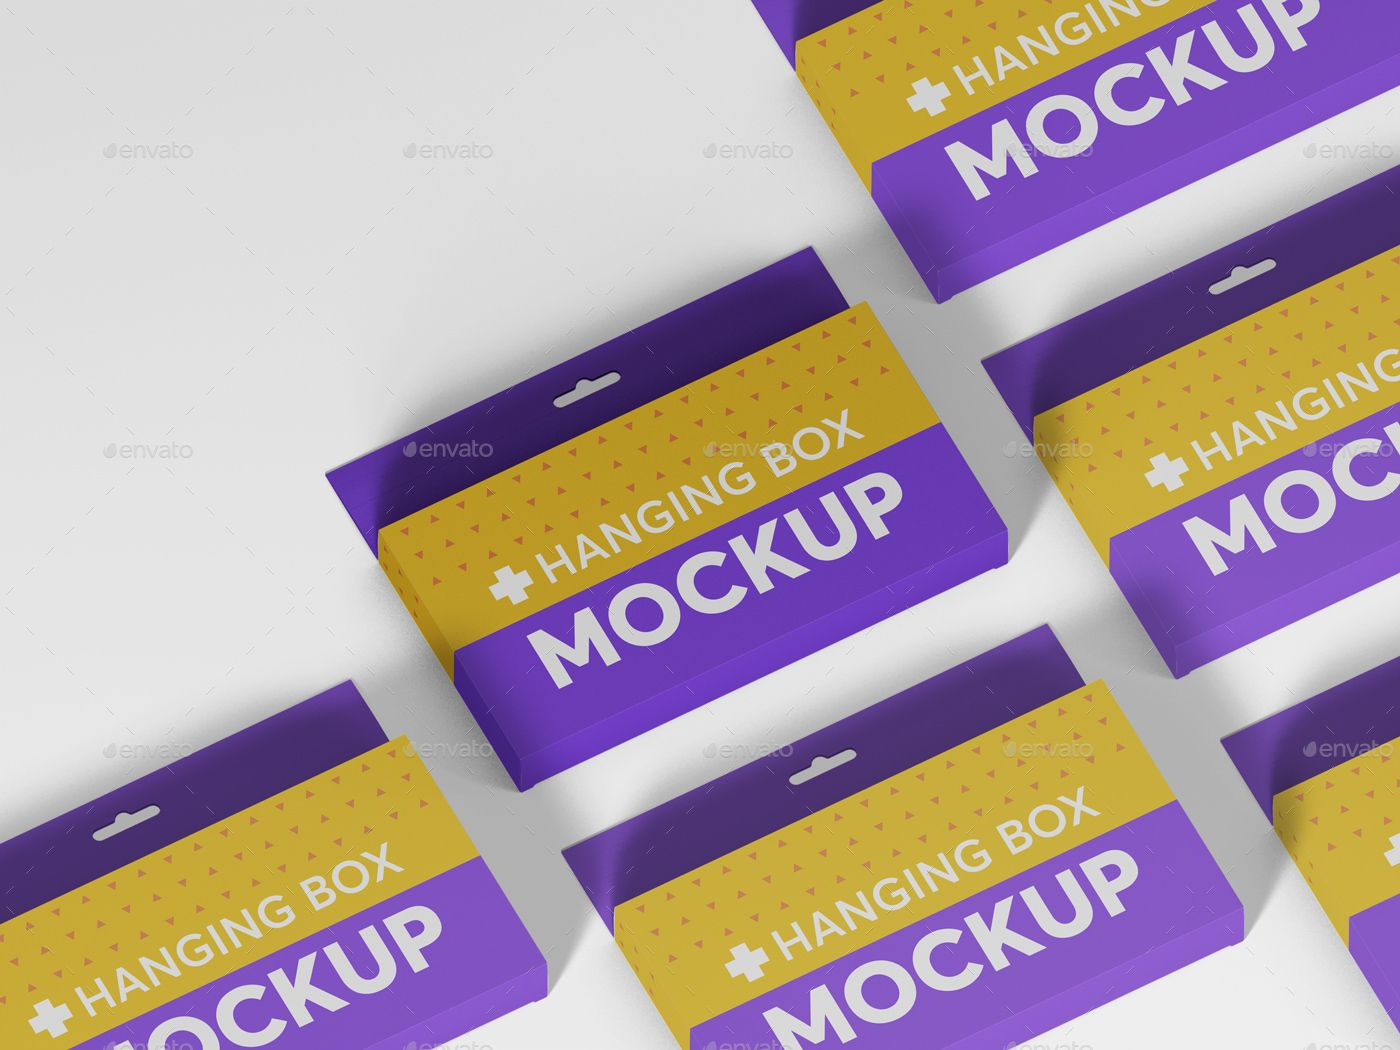 Download Hanging Wide Rectangle Box Mockups Wide Hanging Rectangle Mockups Box Mockup Graphic Design Layouts Box Packaging Design